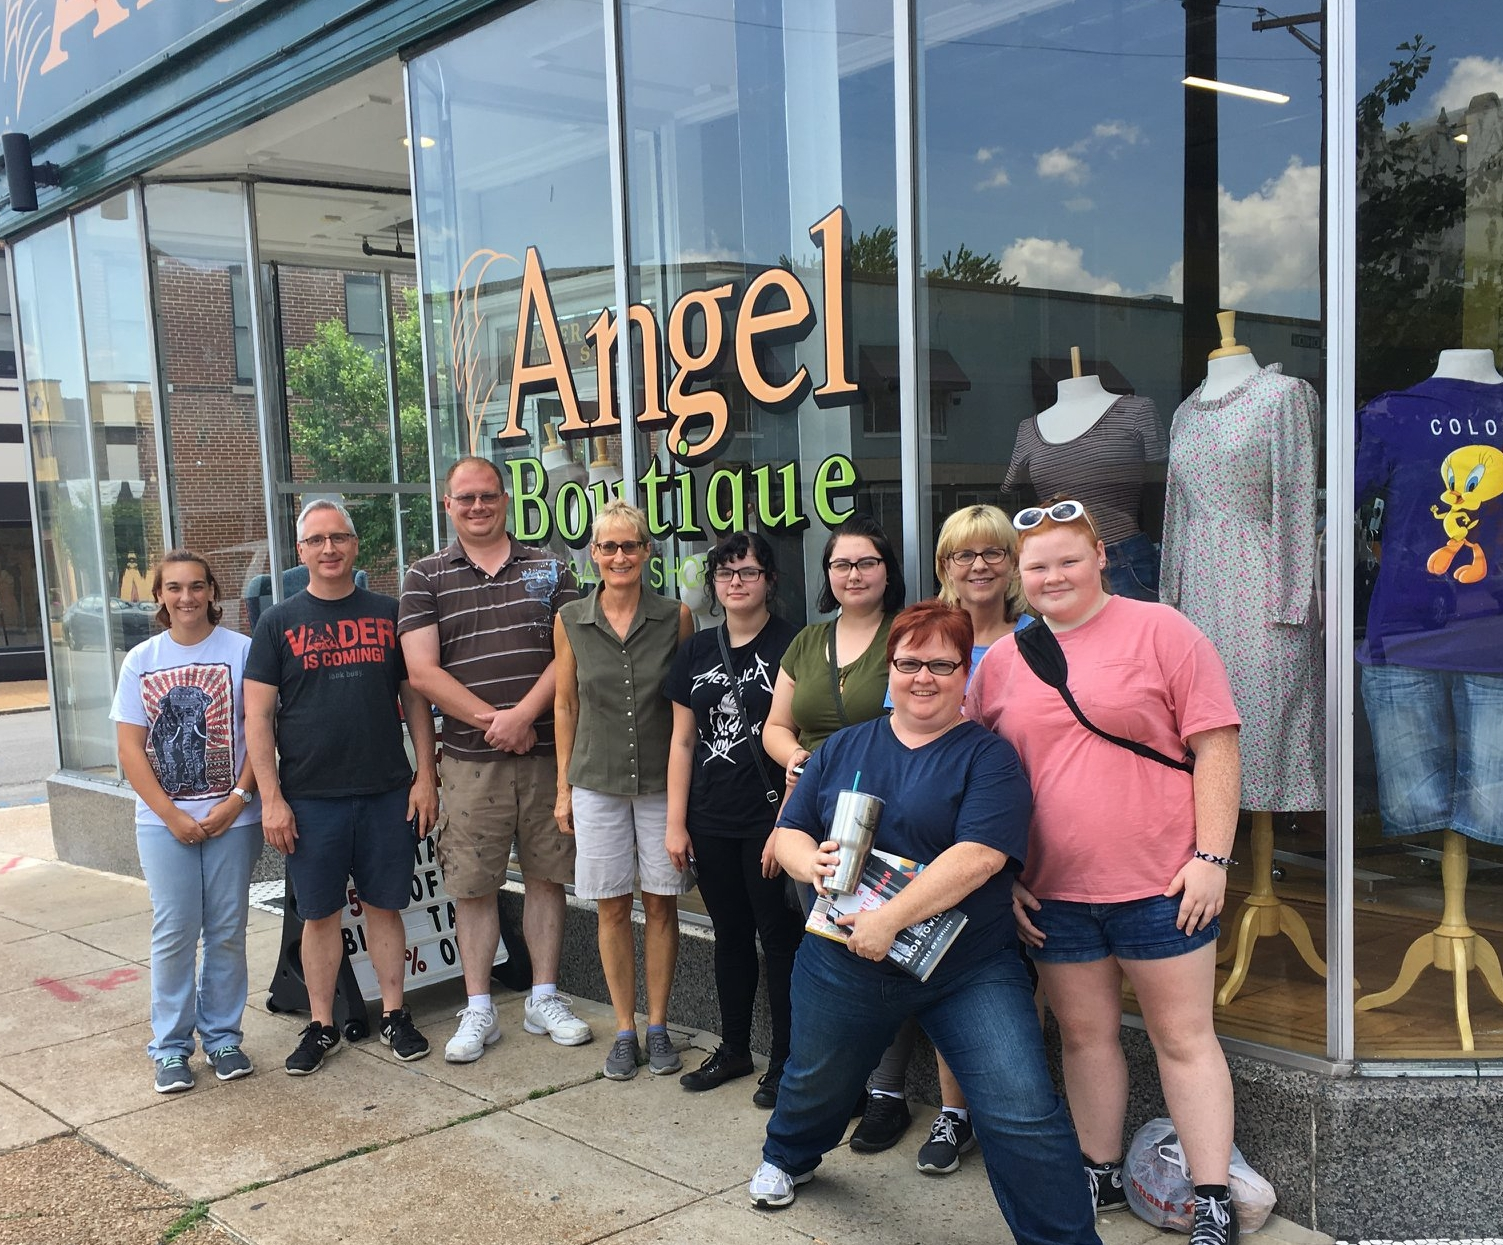 FCC St Joe - Angel Boutique.jpg